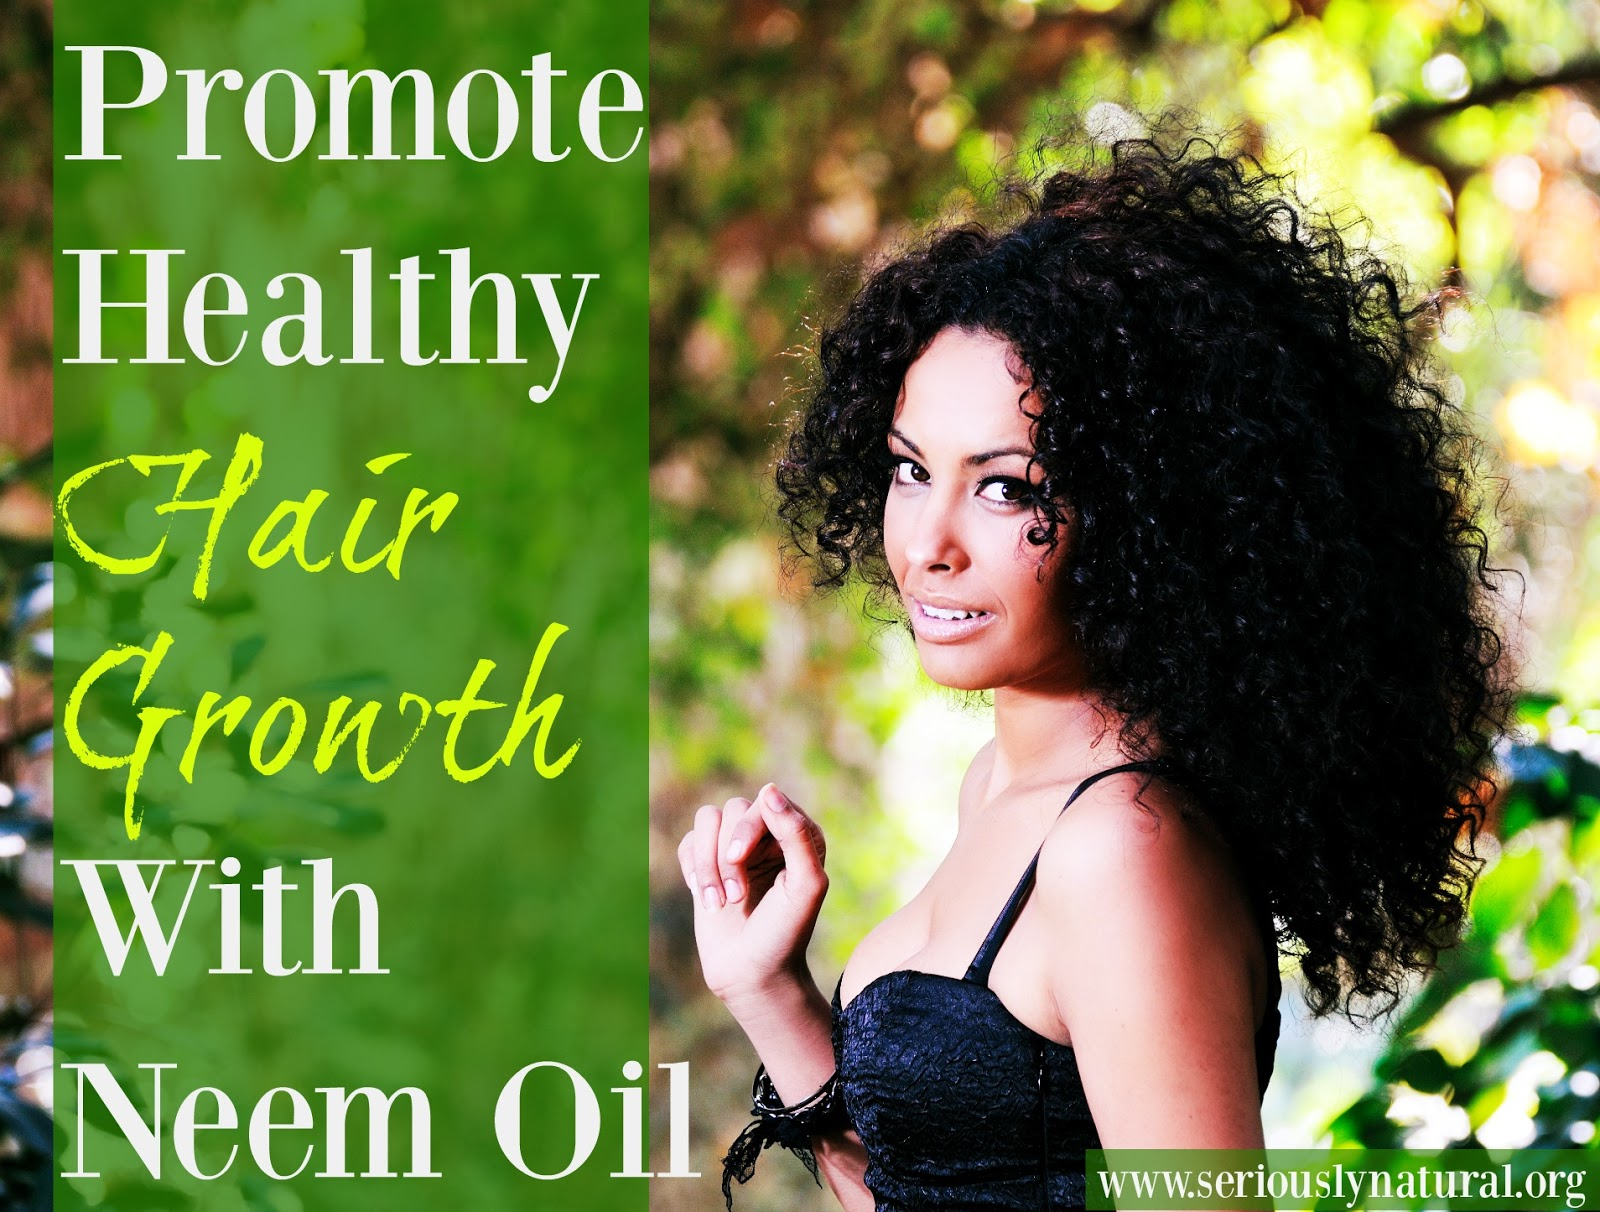 Neem oil for your hair is nothing new but few know what this natural oil can do. Check out our top tips for healthy hair by using this oil.